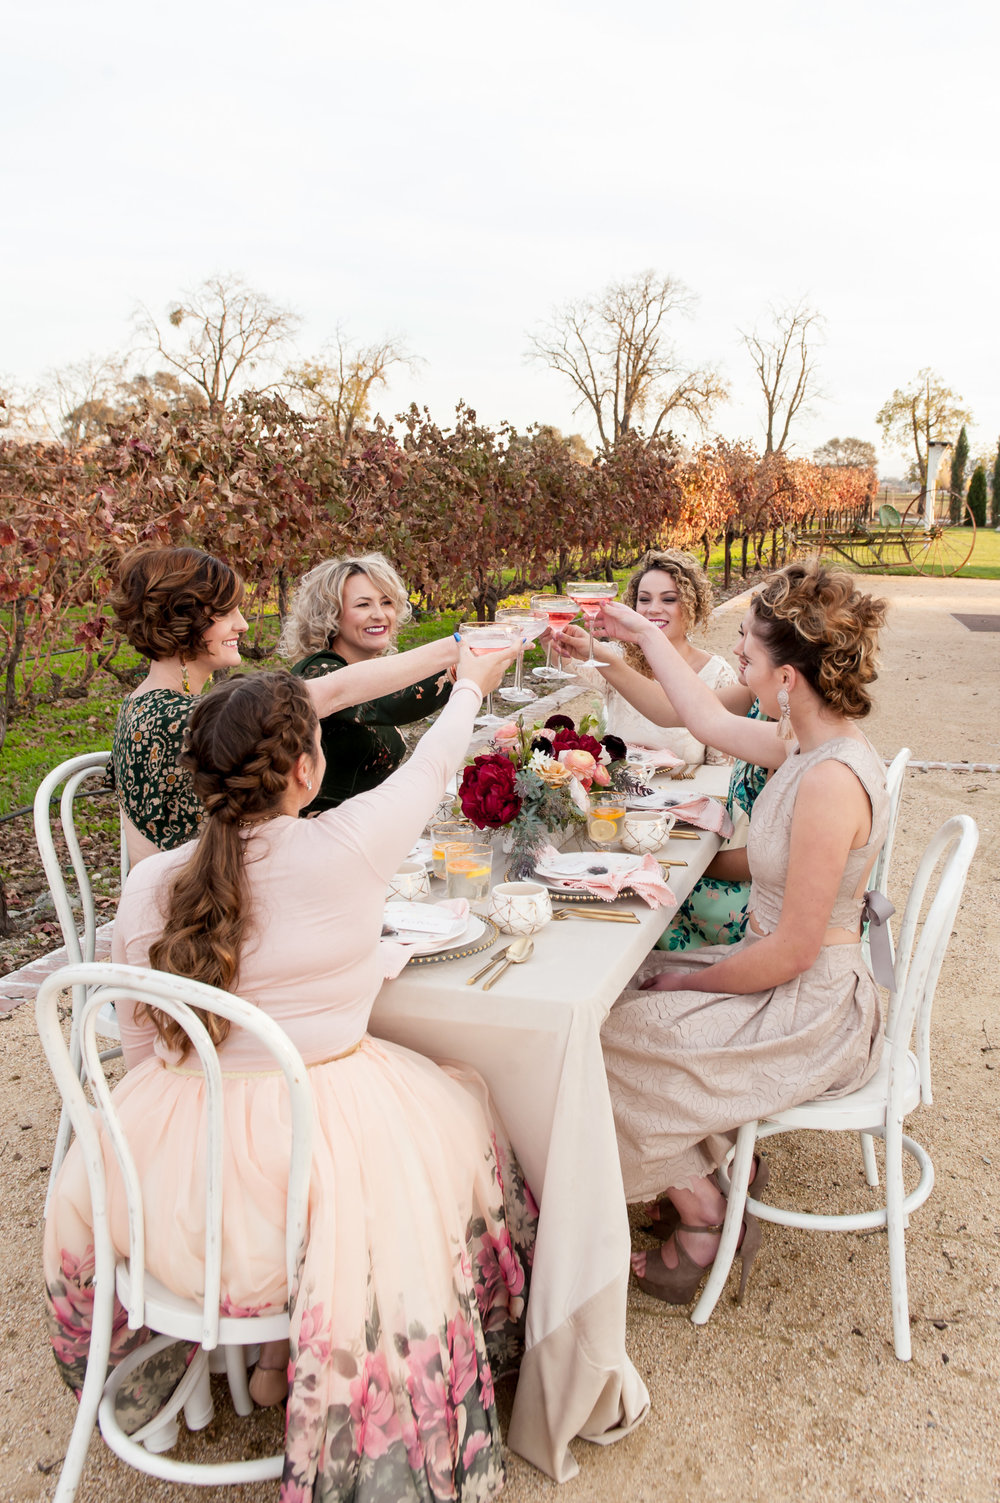 engagement tea party outside in vineyard at the fitz place in san martin ladies cheersing to the bride in hand made dresses and skirts by the taste studio braids curls and buns with glowing